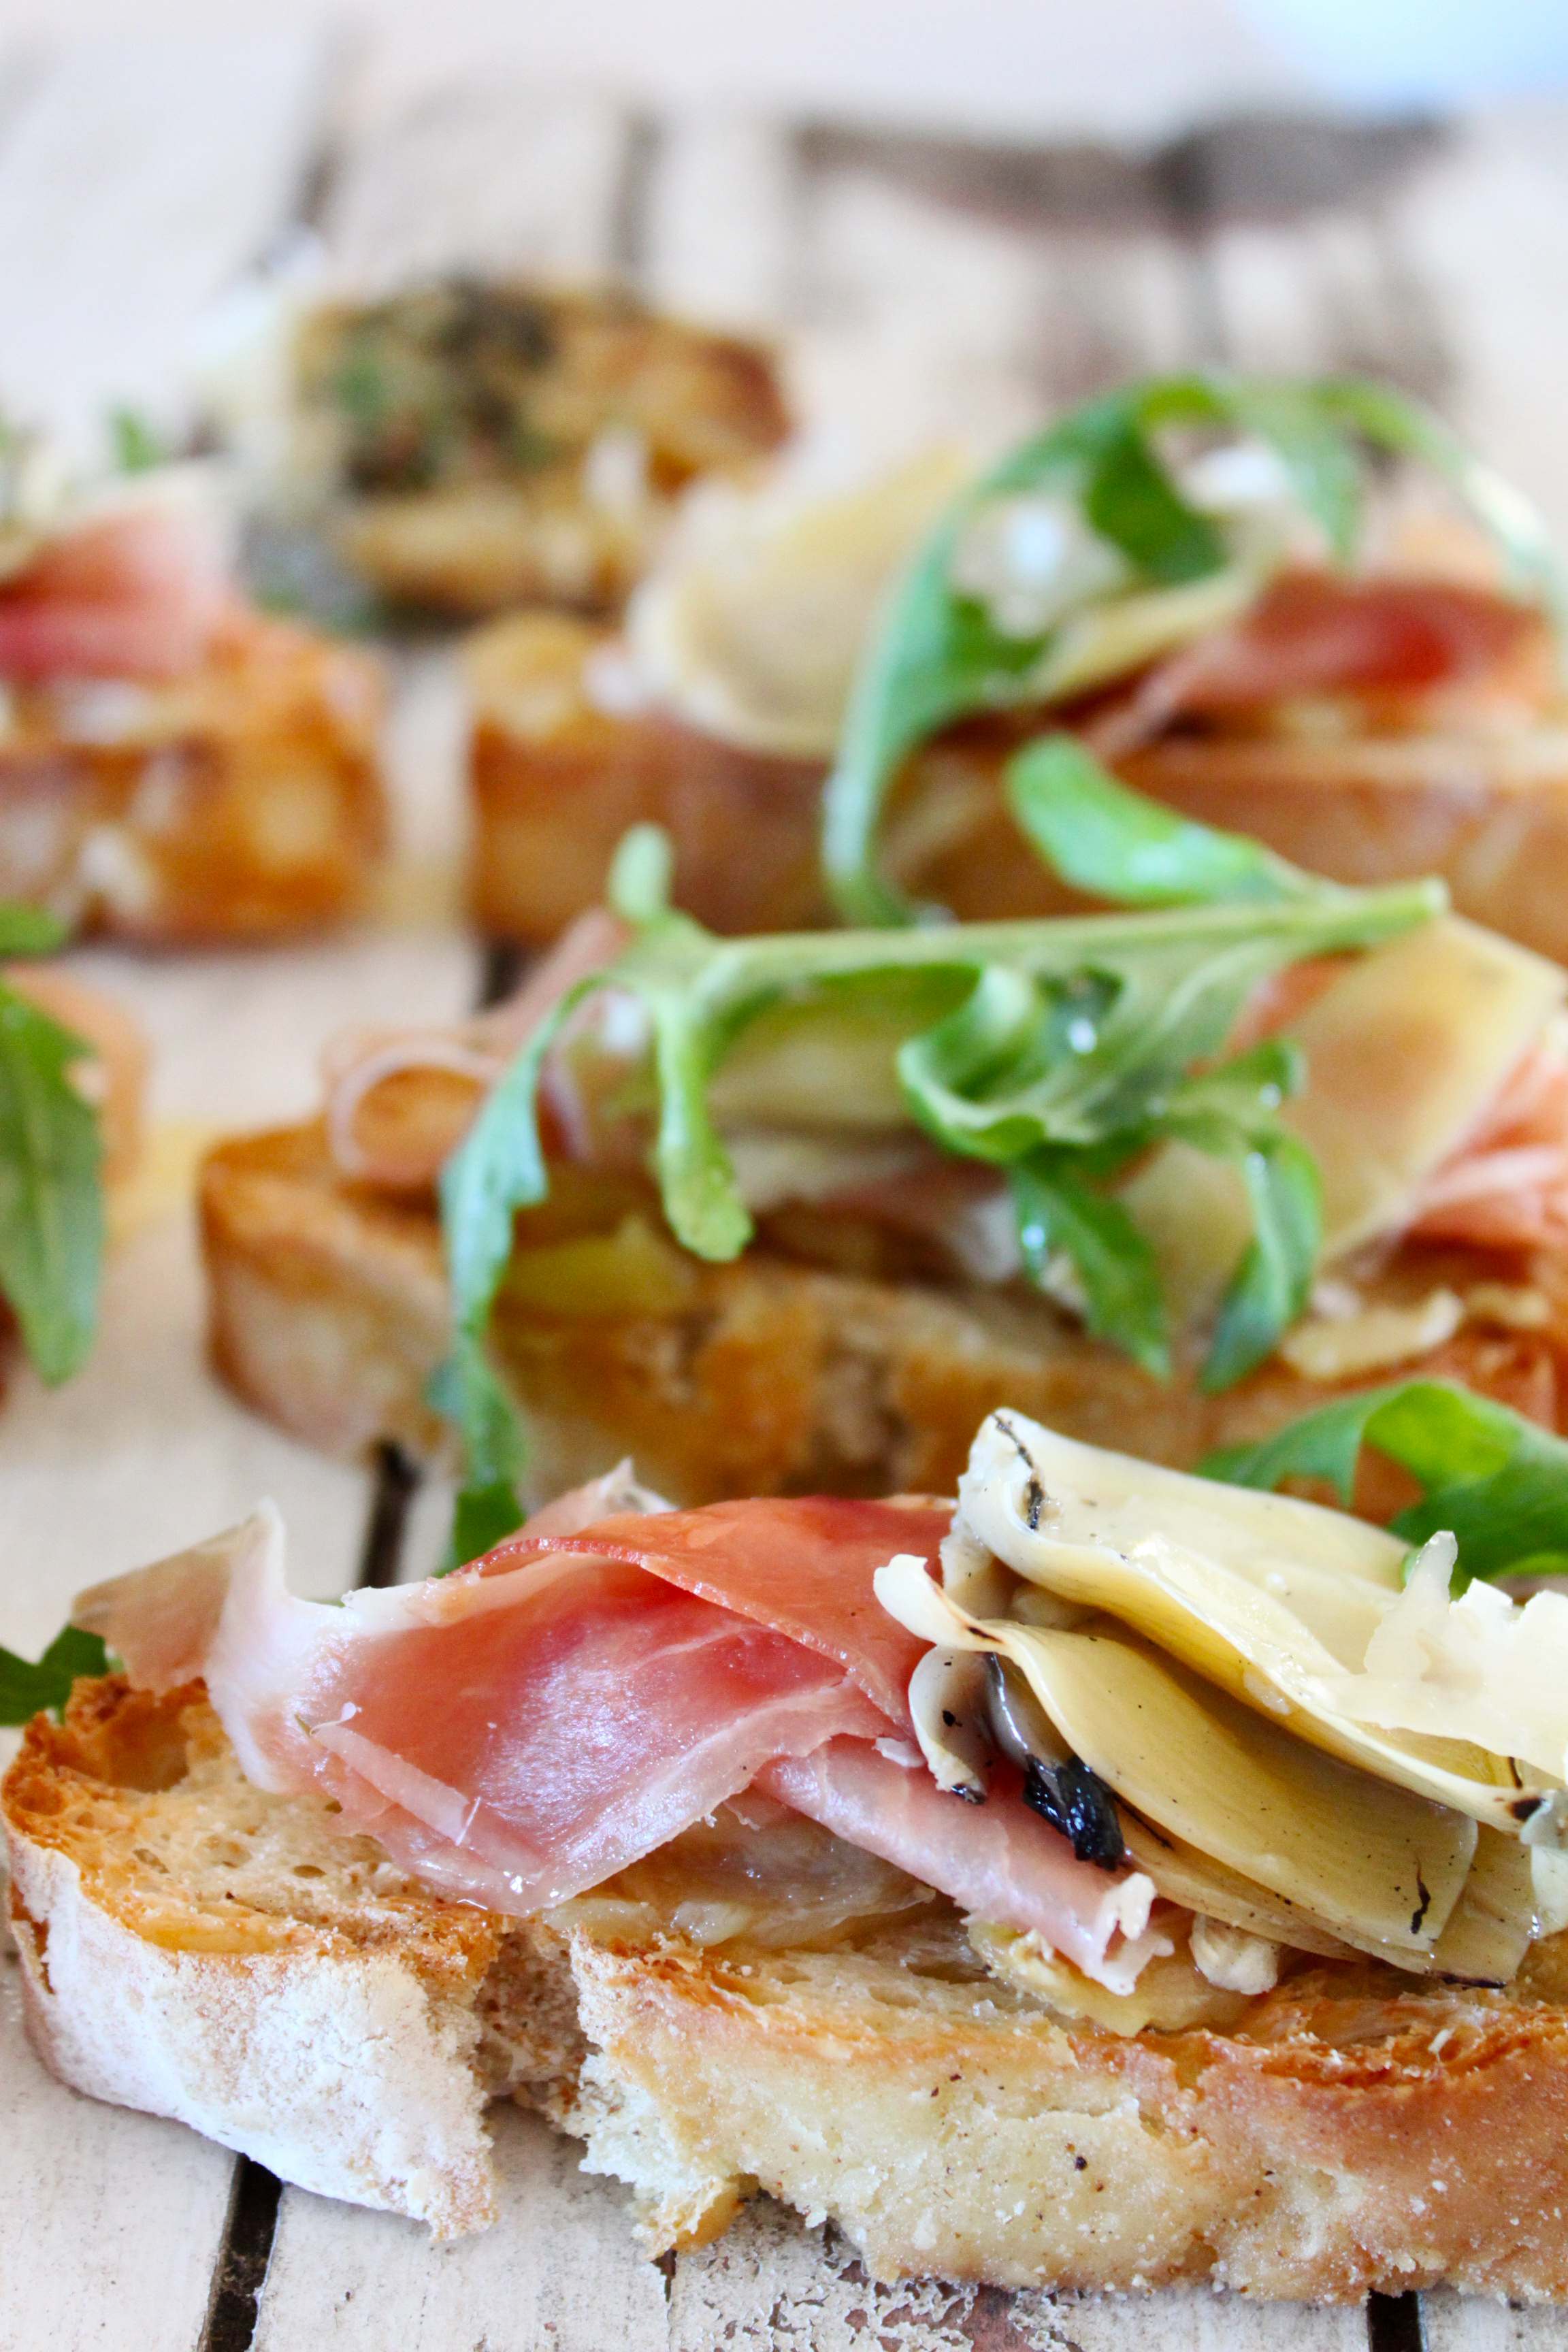 Bruschetta with squashed roasted garlic marinated for Prosciutto canape